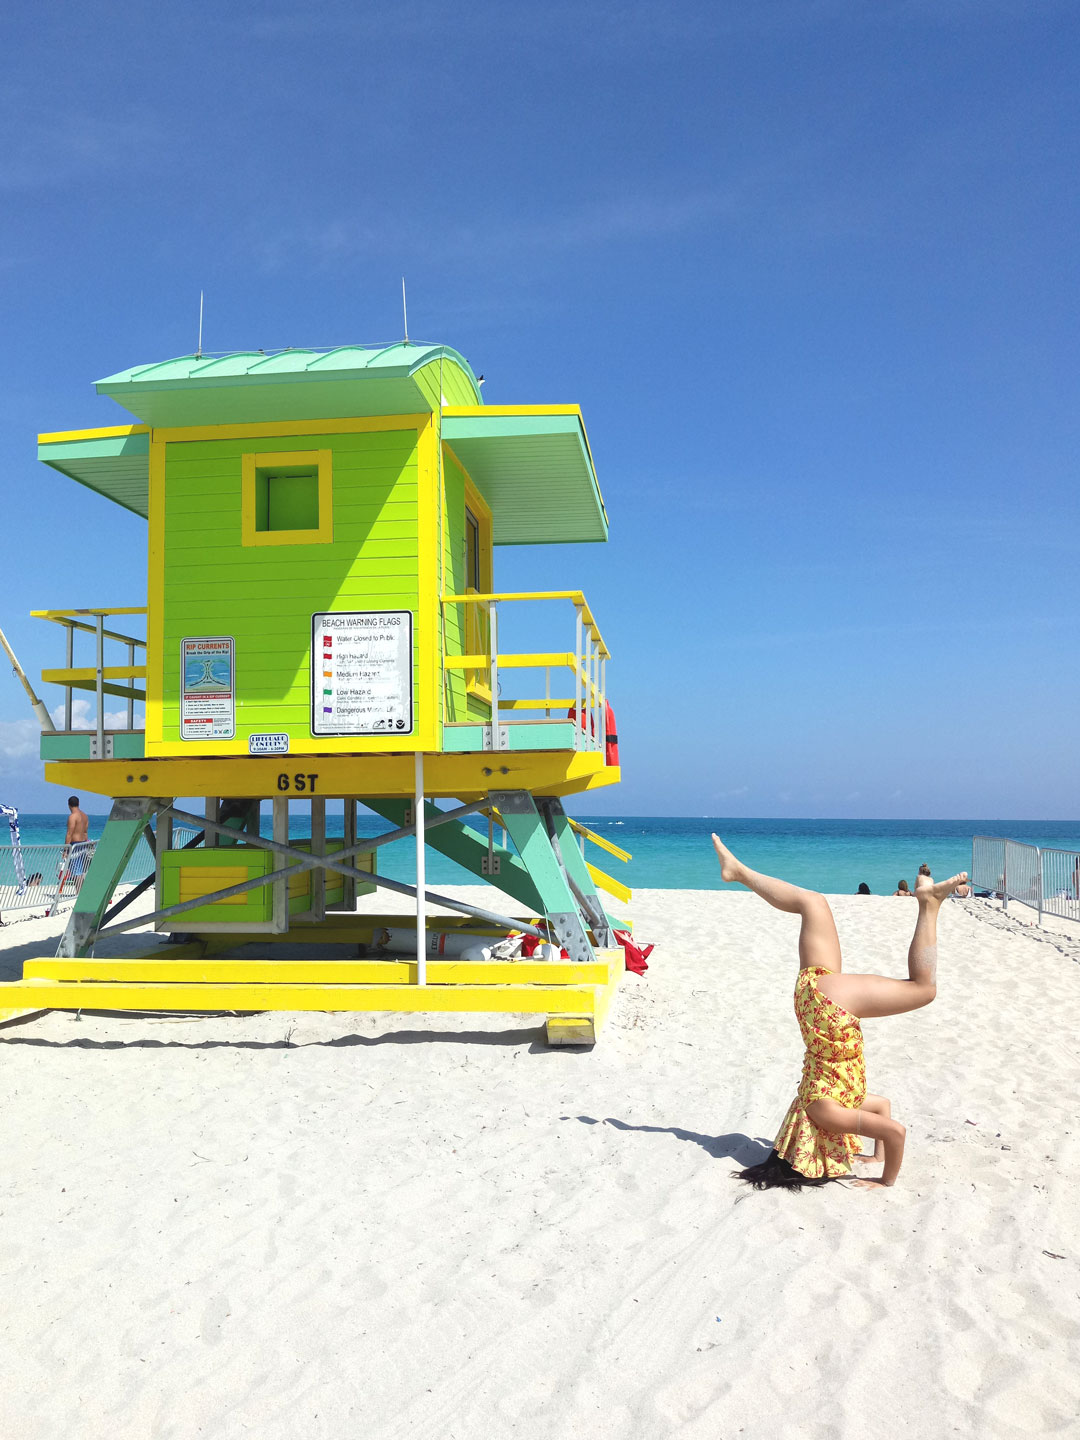 southbeach_lighthouse_miami_mlesamsara_2018.jpg